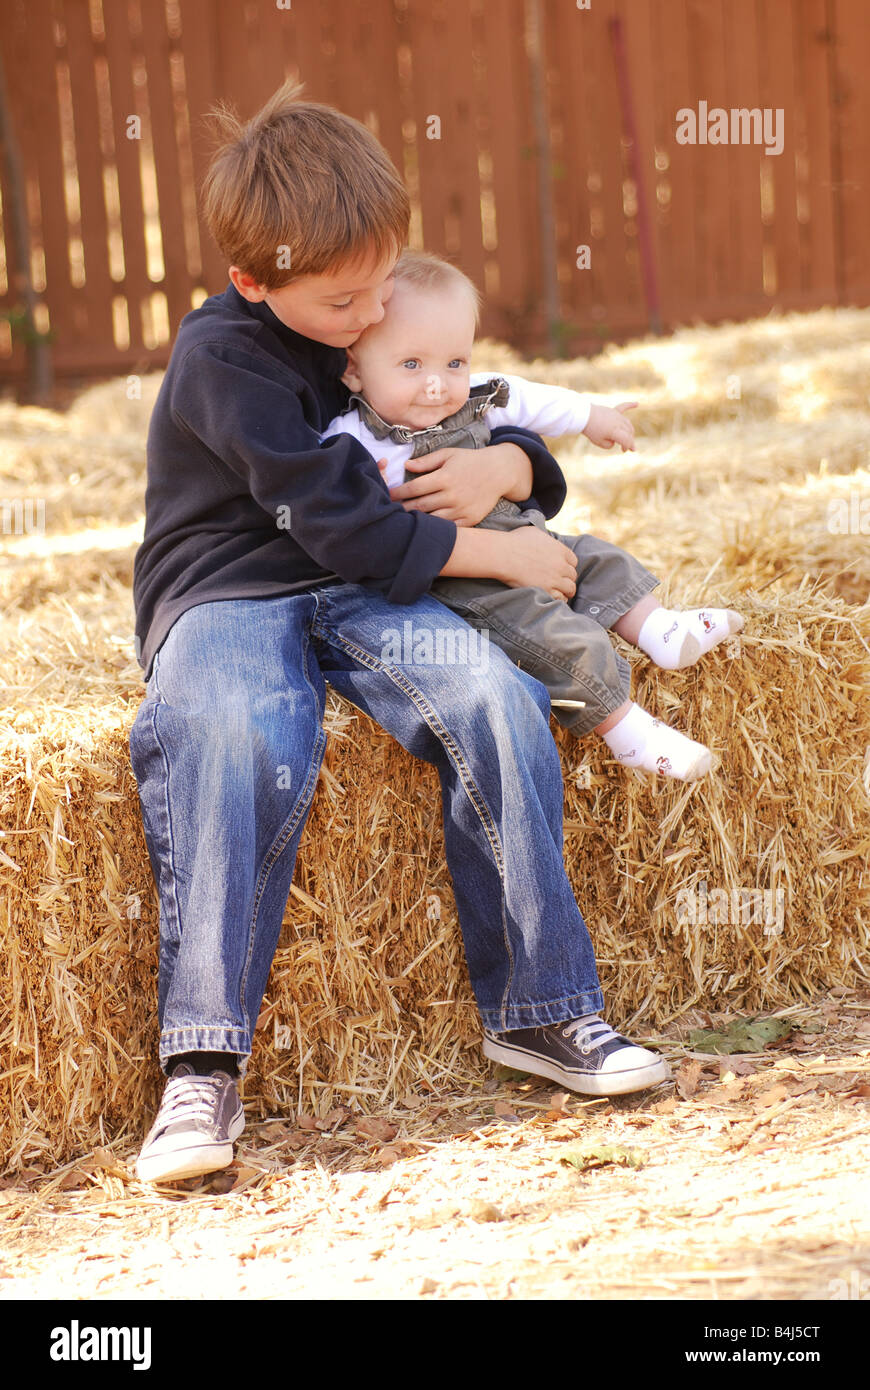 Big brother holding his baby brother at a farm - Stock Image